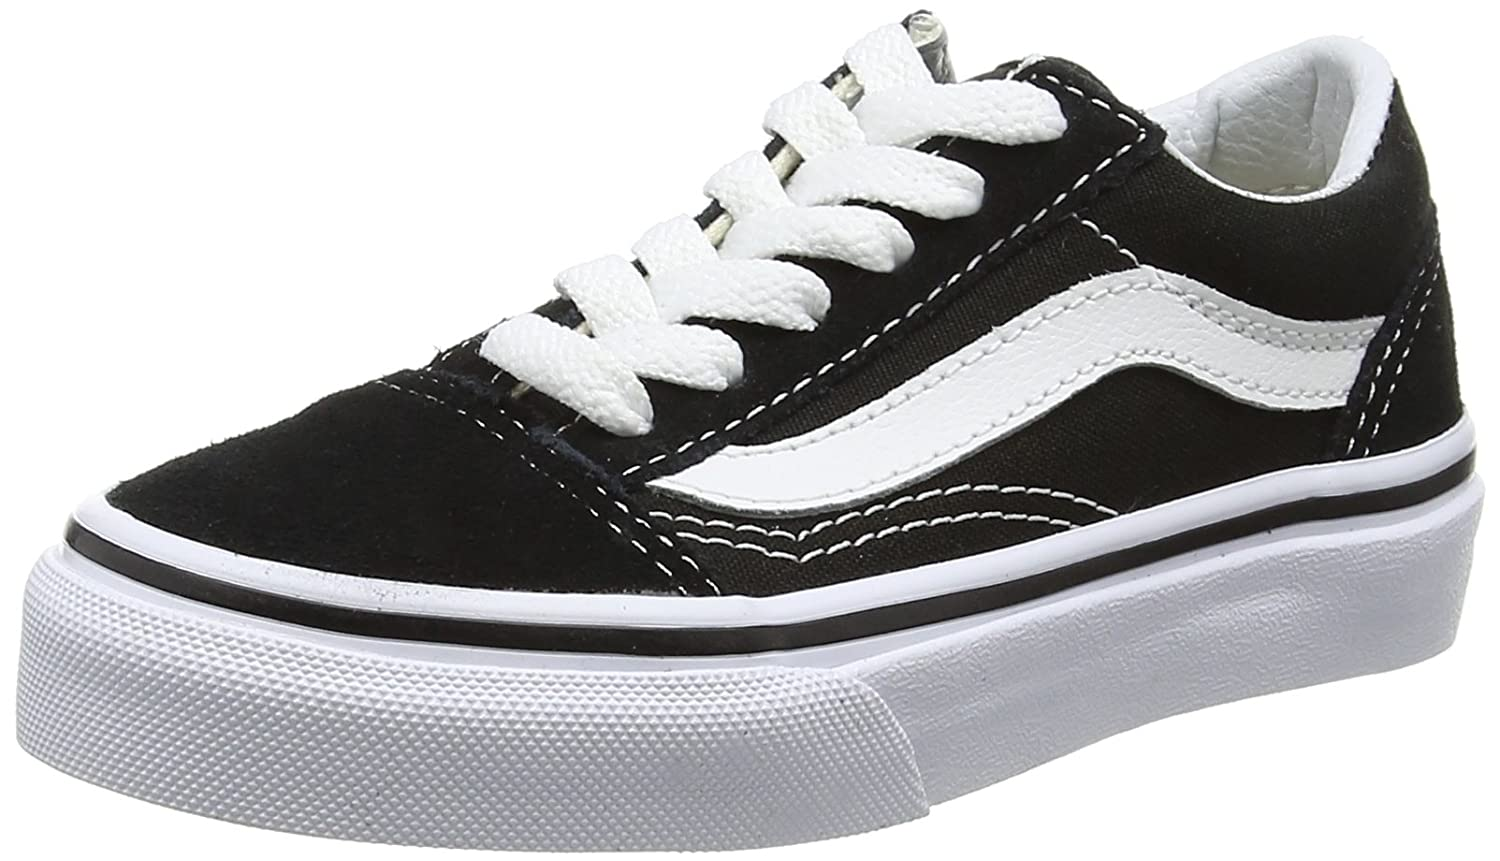 94da5bb0 Vans Unisex Kids' Old Skool Trainers